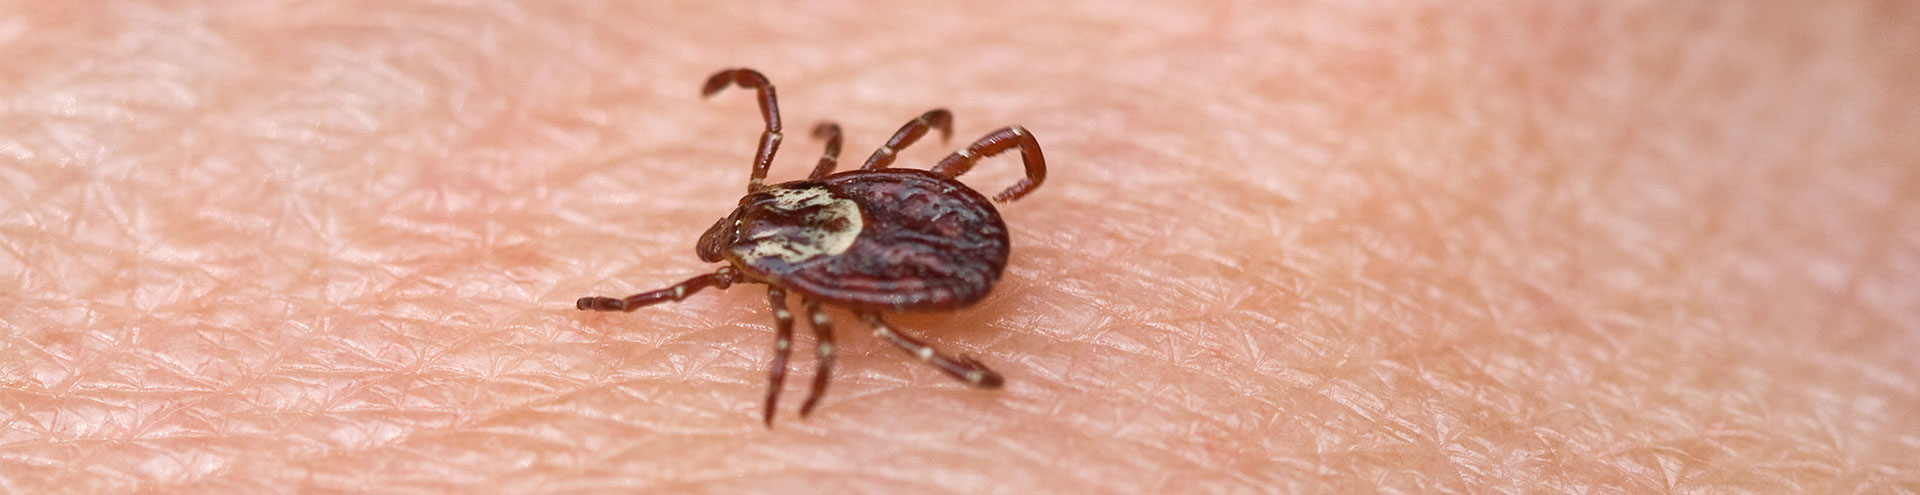 A flat brown tick crawling along a persons skin, used to identify the pest.